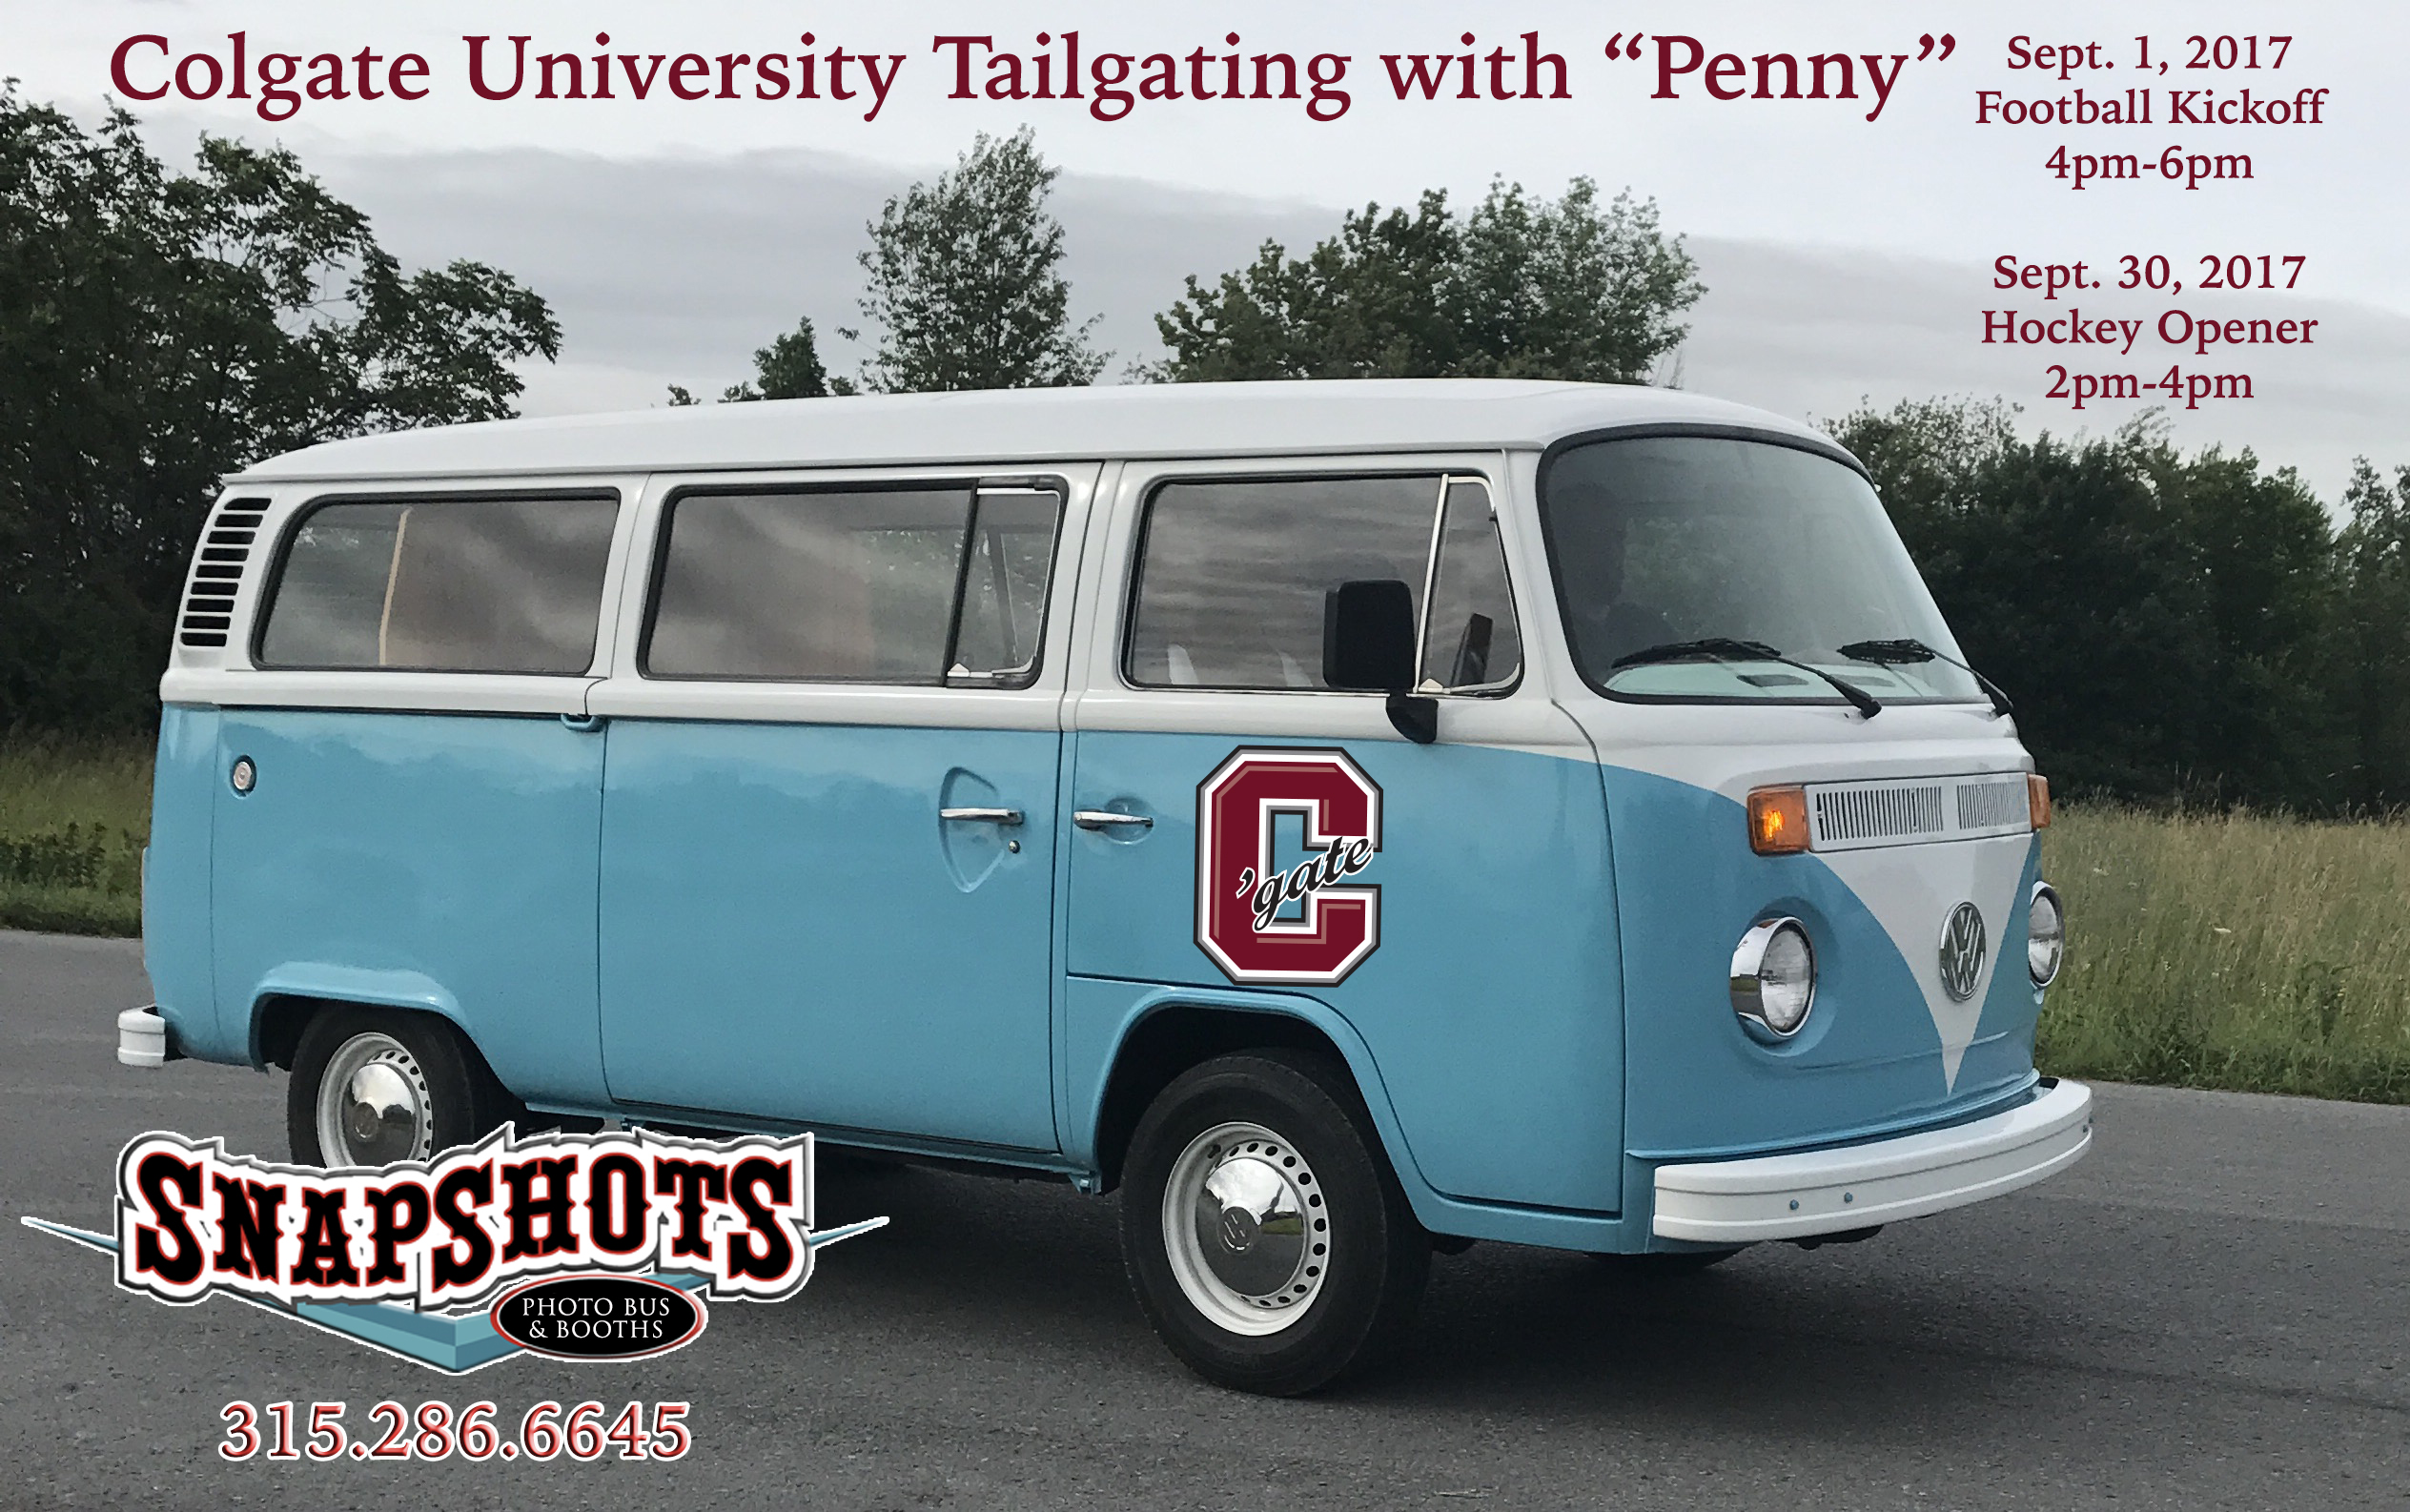 COLLEGE TAILGATING WITH SNAPSHOTS VW PHOTO BOOTH BUS